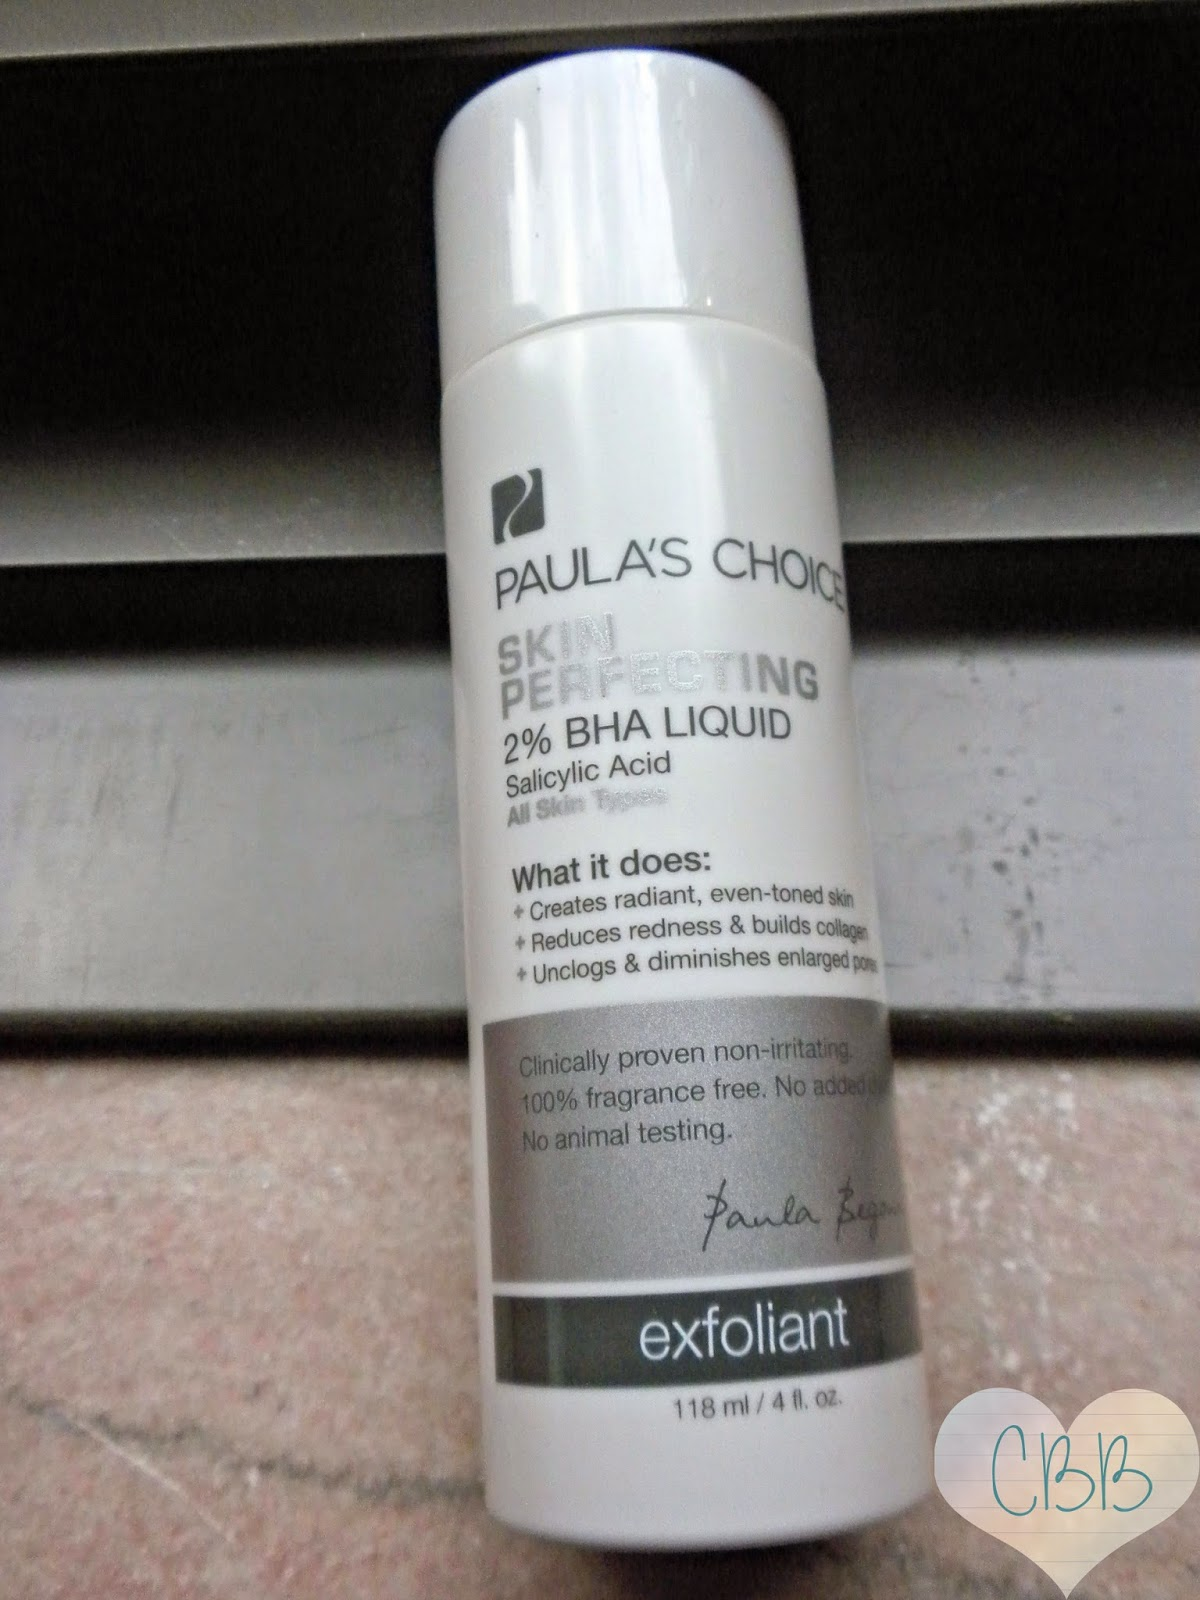 PAULA'S CHOICE 2% BHA Liquid Exfoliant ($26 for 4oz)